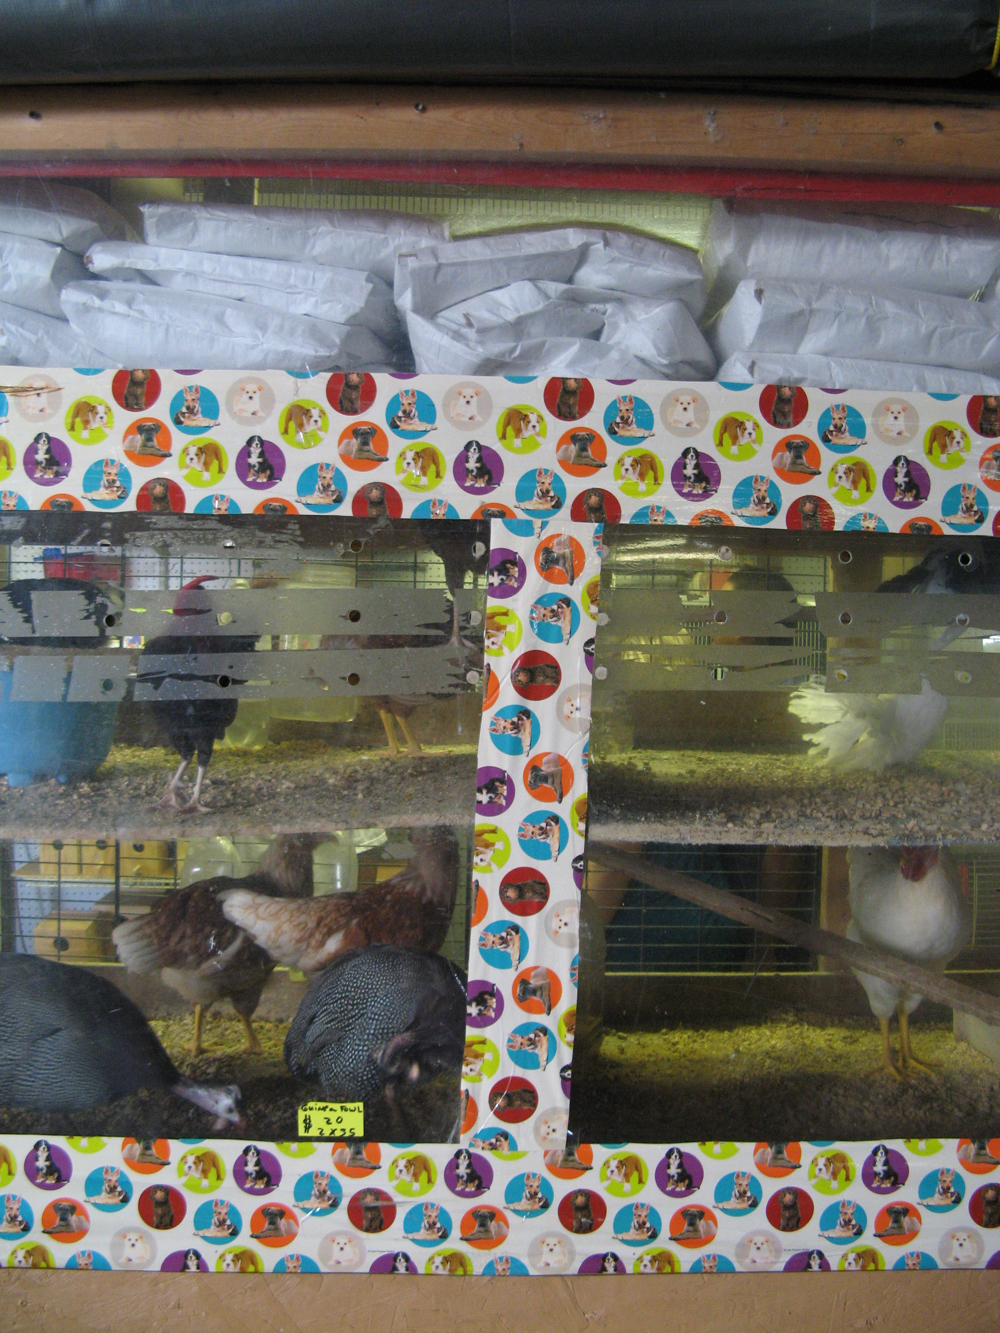 Weird pet shop inside a flea market